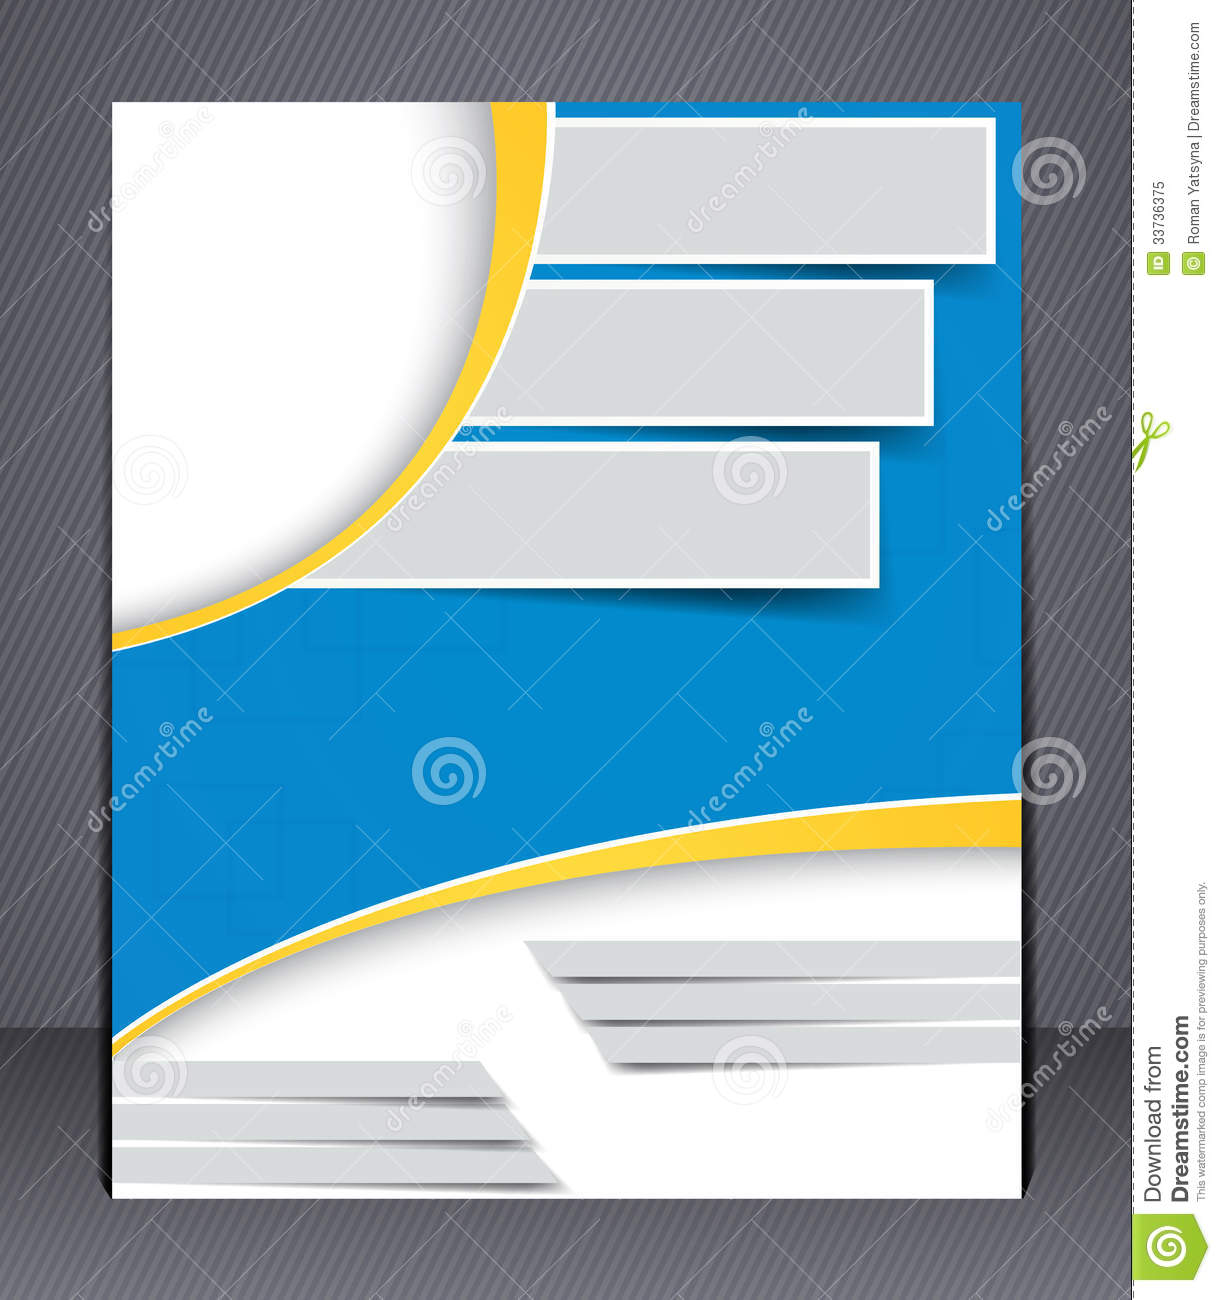 Brochure design in blue and yellow colors stock vector for Booklet brochure template